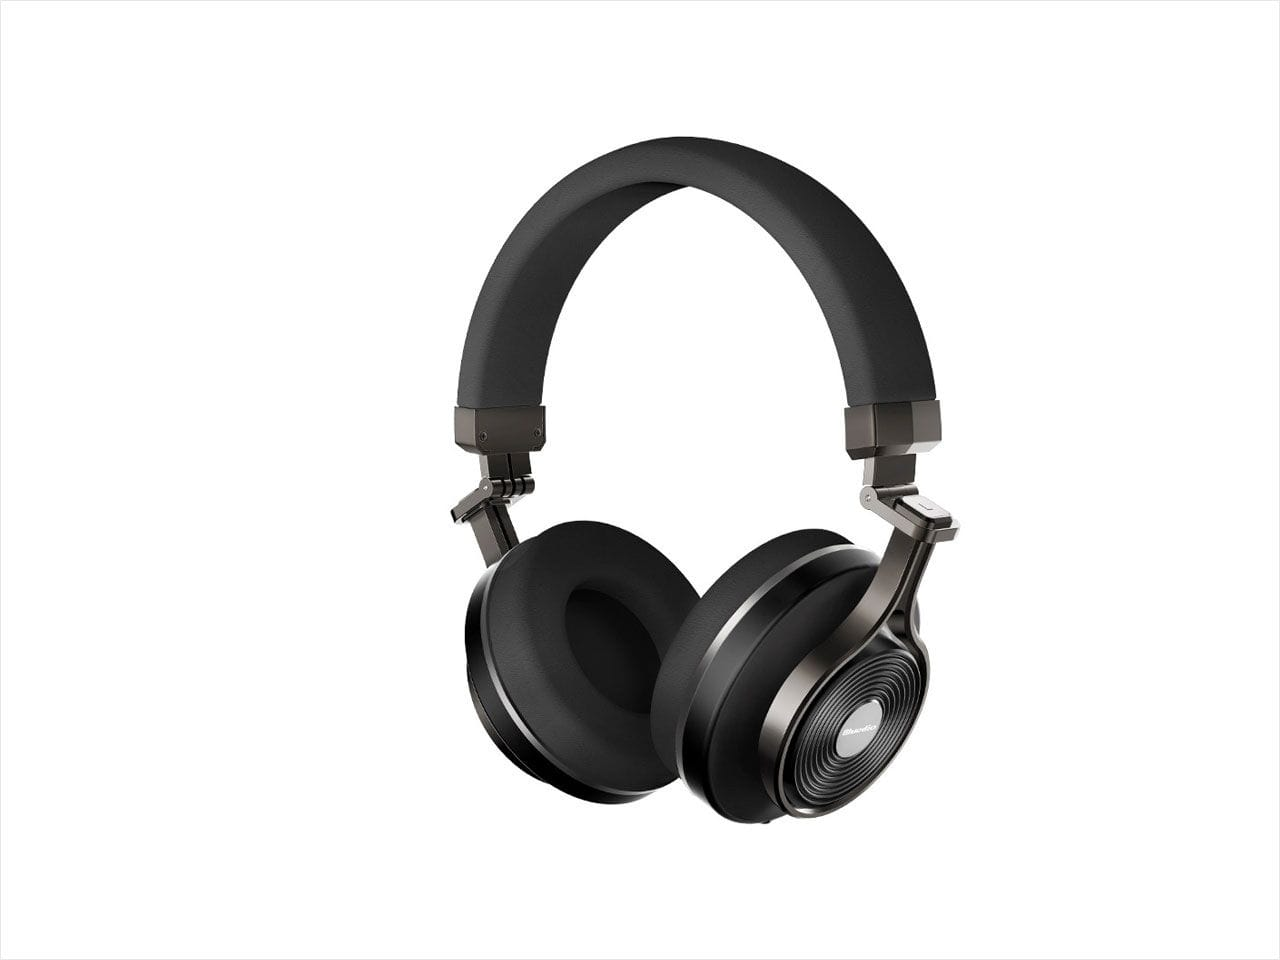 Bluedio T3 Plus (Turbine 3rd) Wireless Bluetooth 4.1 Stereo Headphones with Mic and microSD slot $38@NF